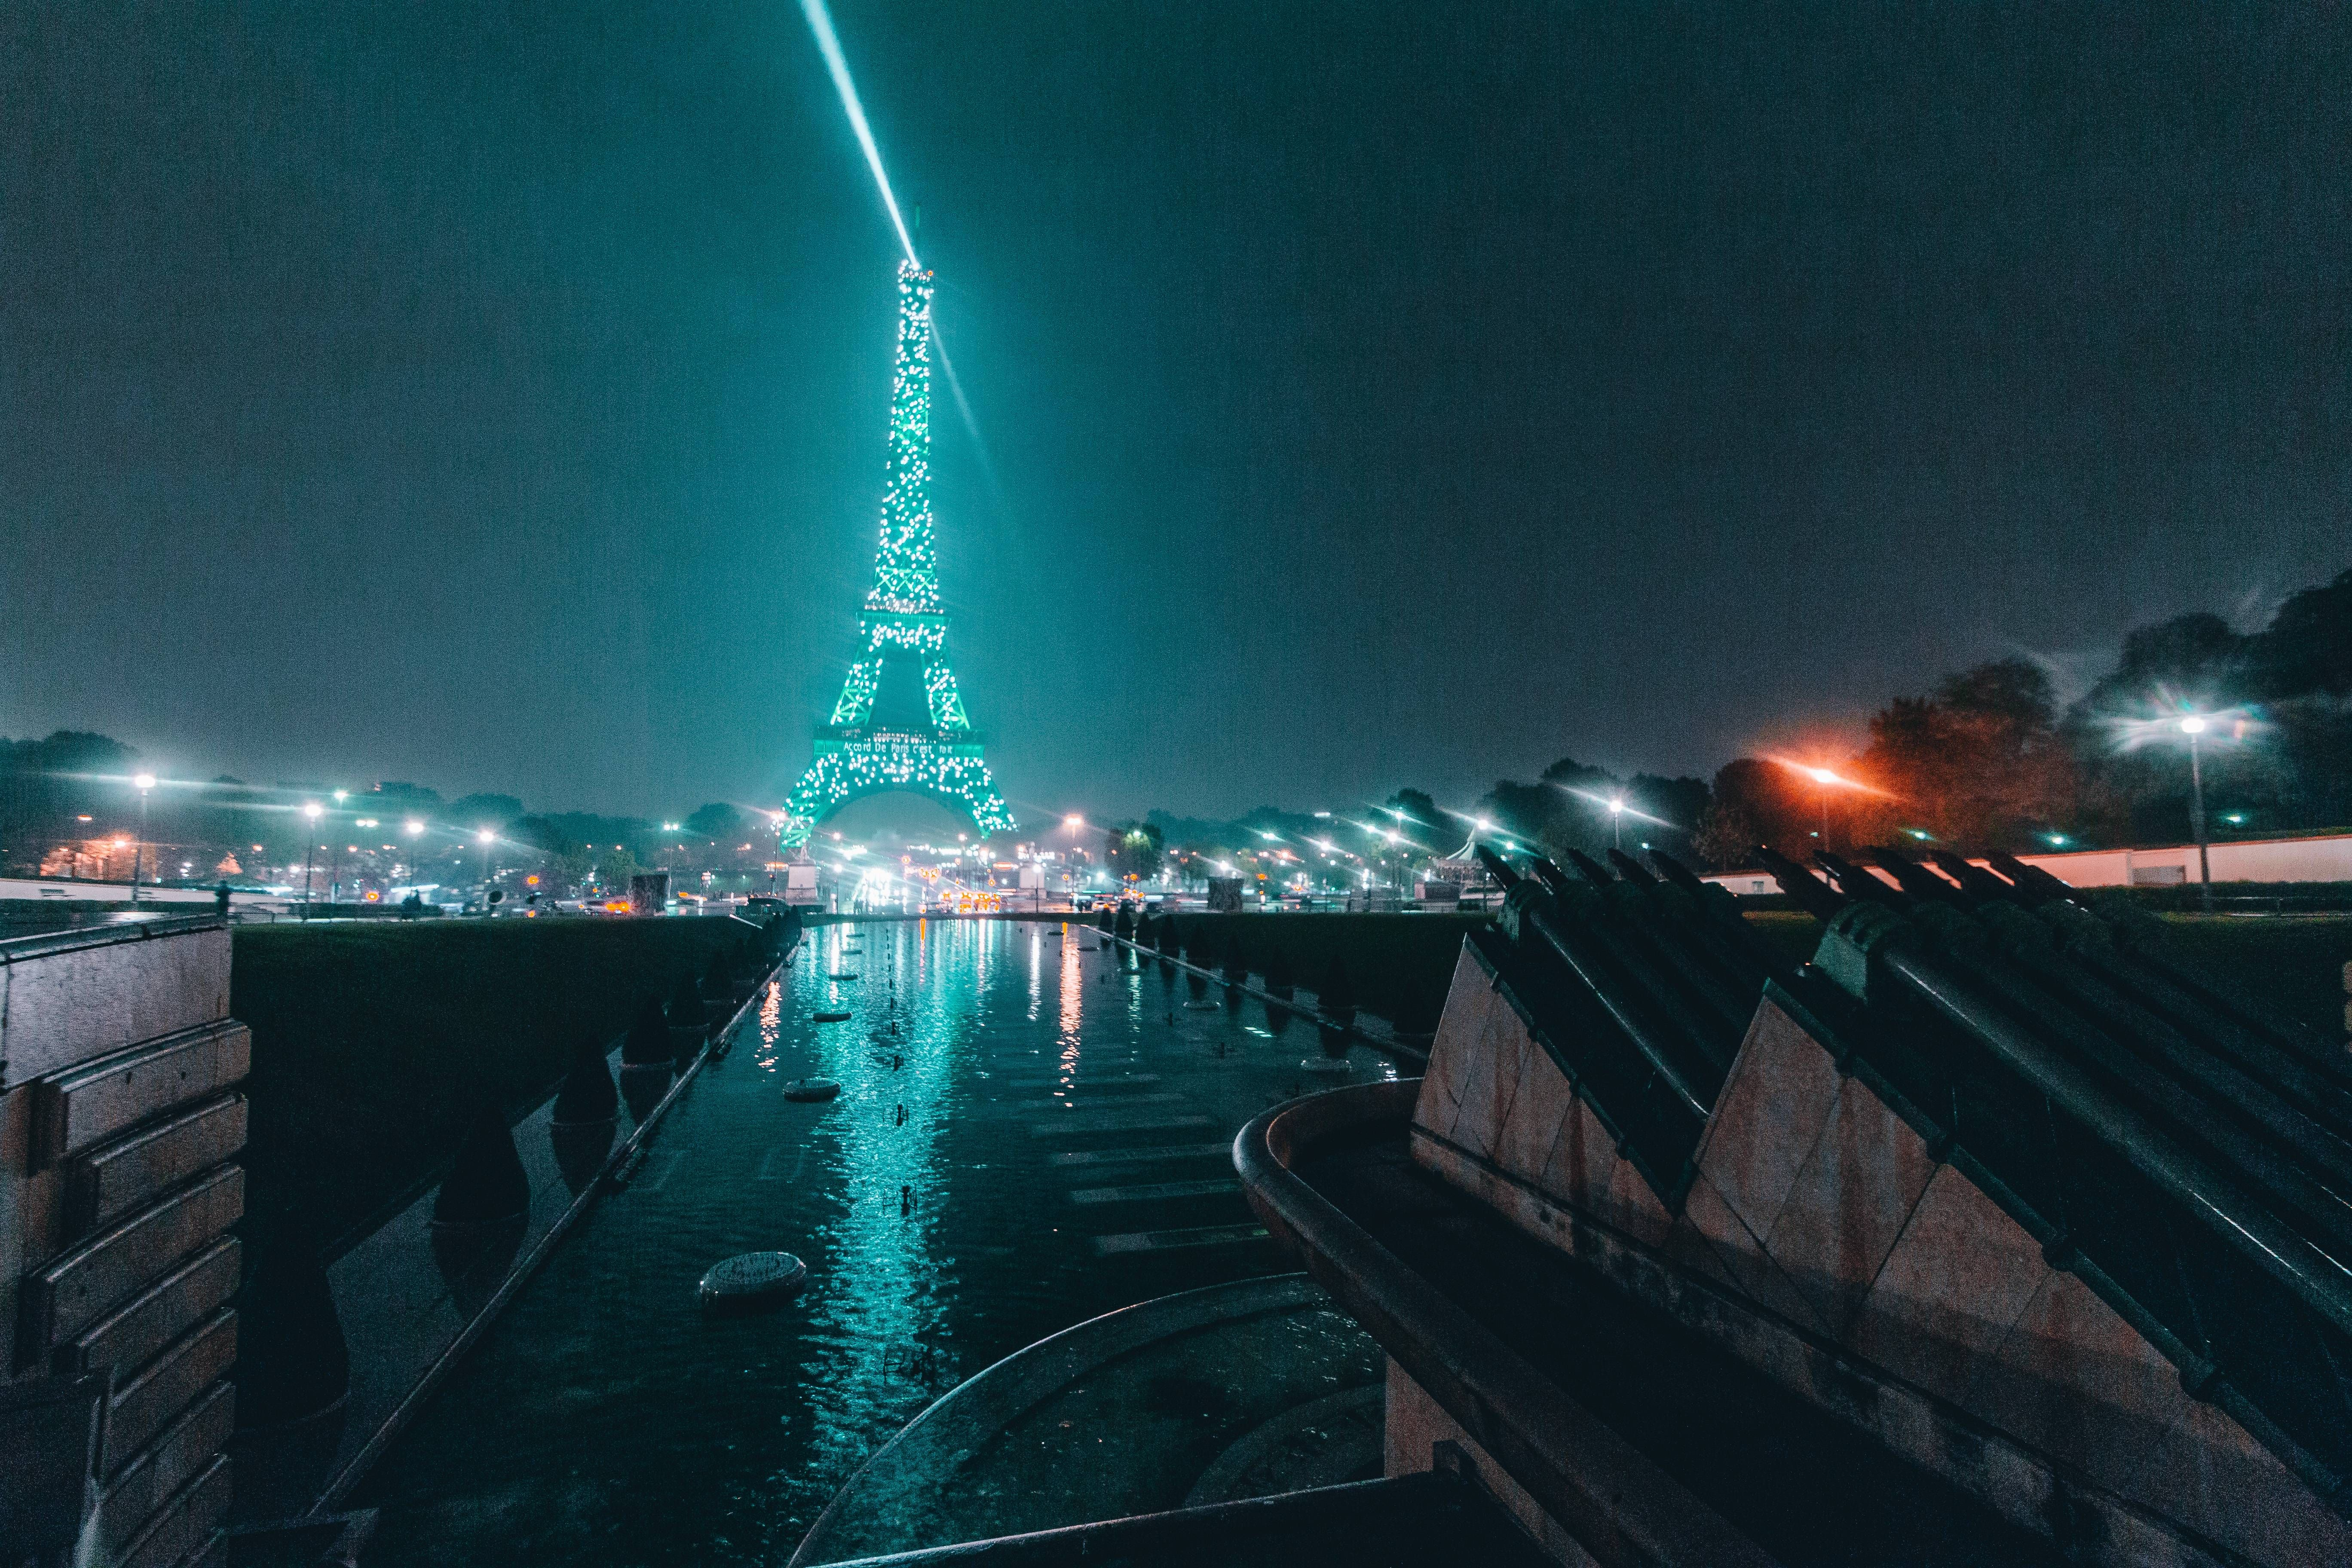 ITAP of the Eiffel Tower lit in green on a rainy day http://imgur.com/gallery/lFHJZ